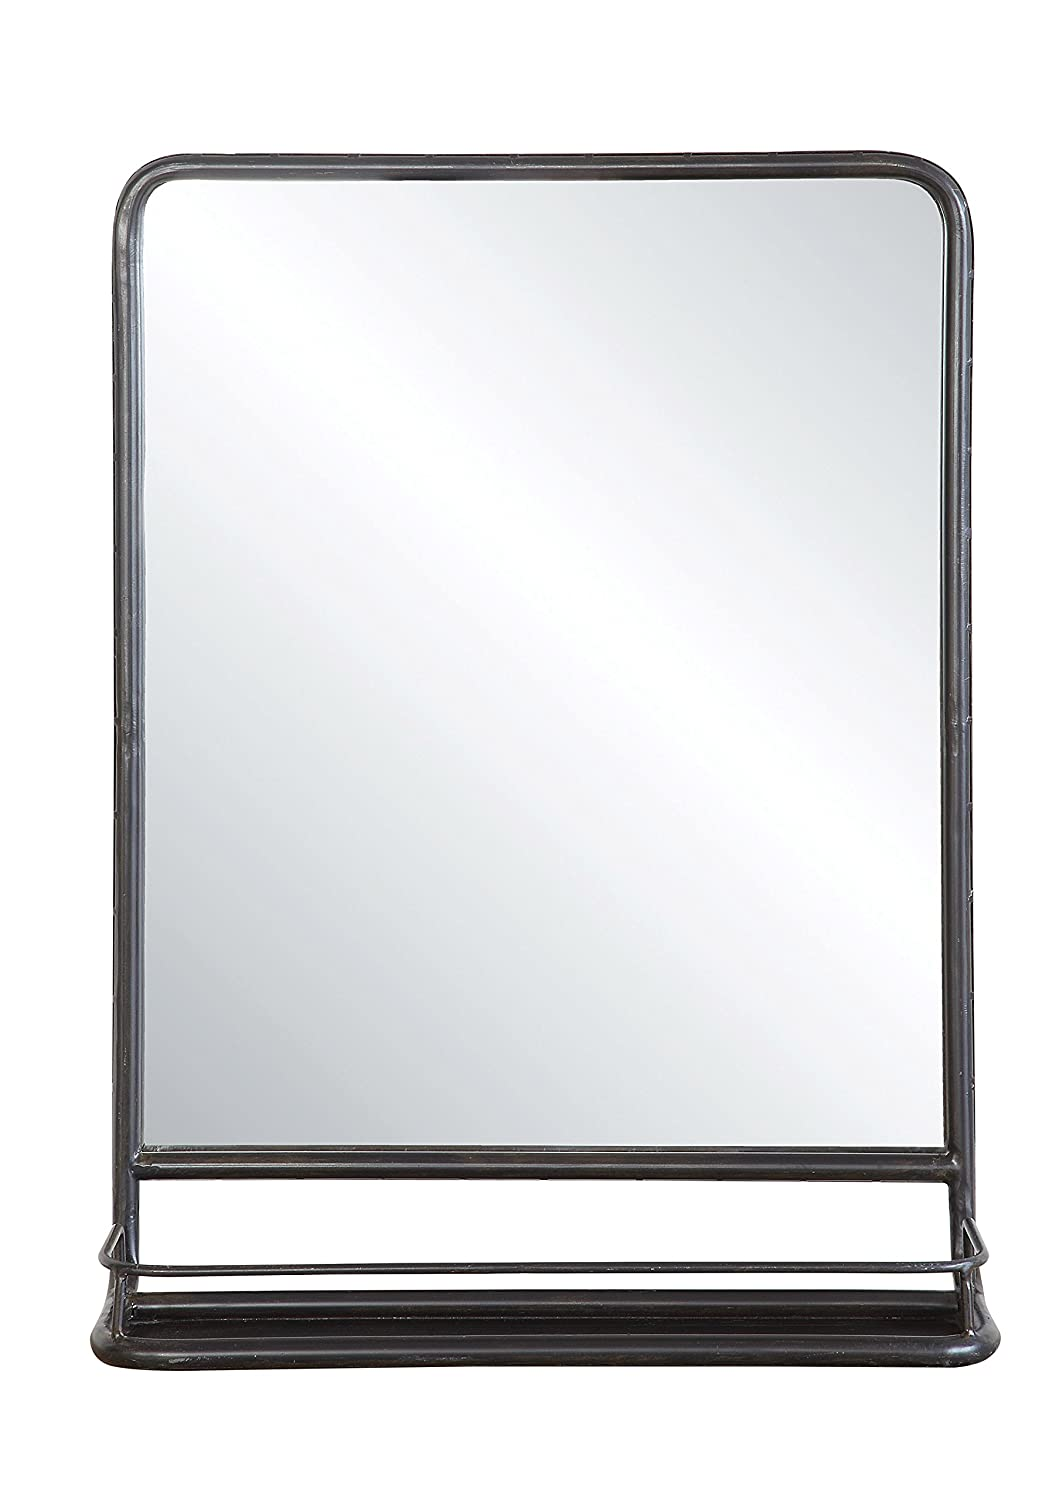 Creative Co-op DA4675 Metal Framed Mirror with Shelf